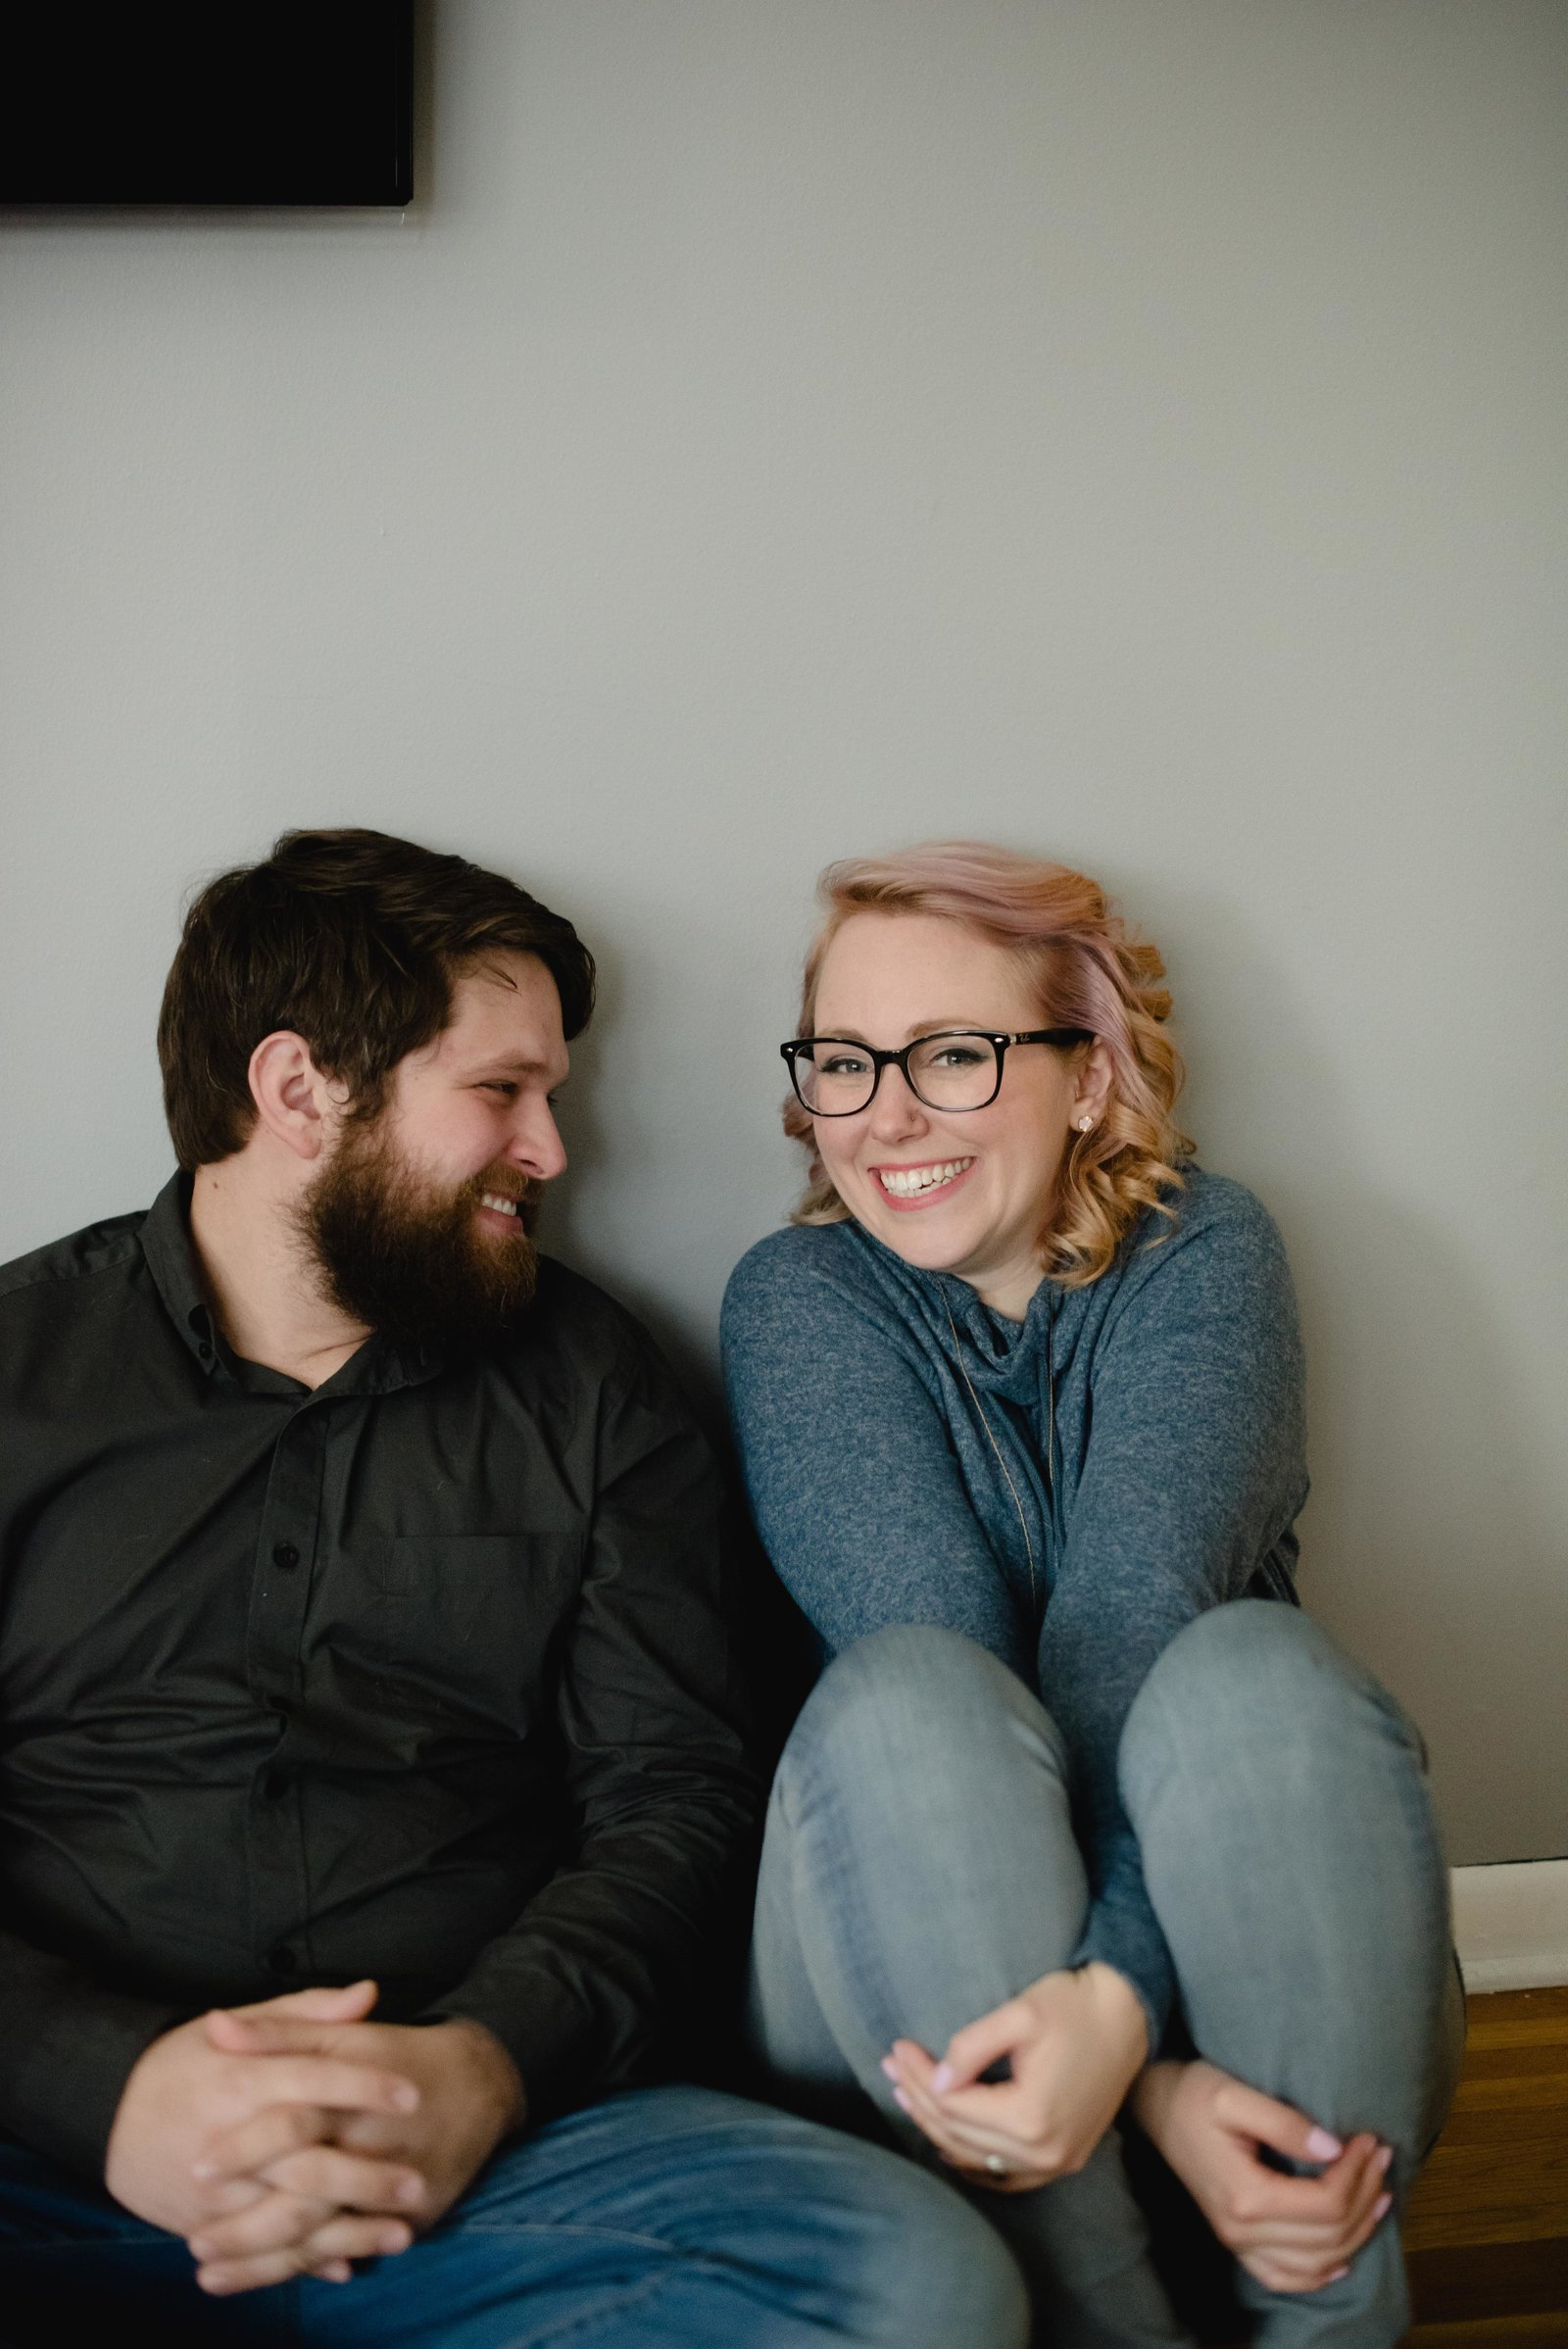 Quirky Couples Session at home